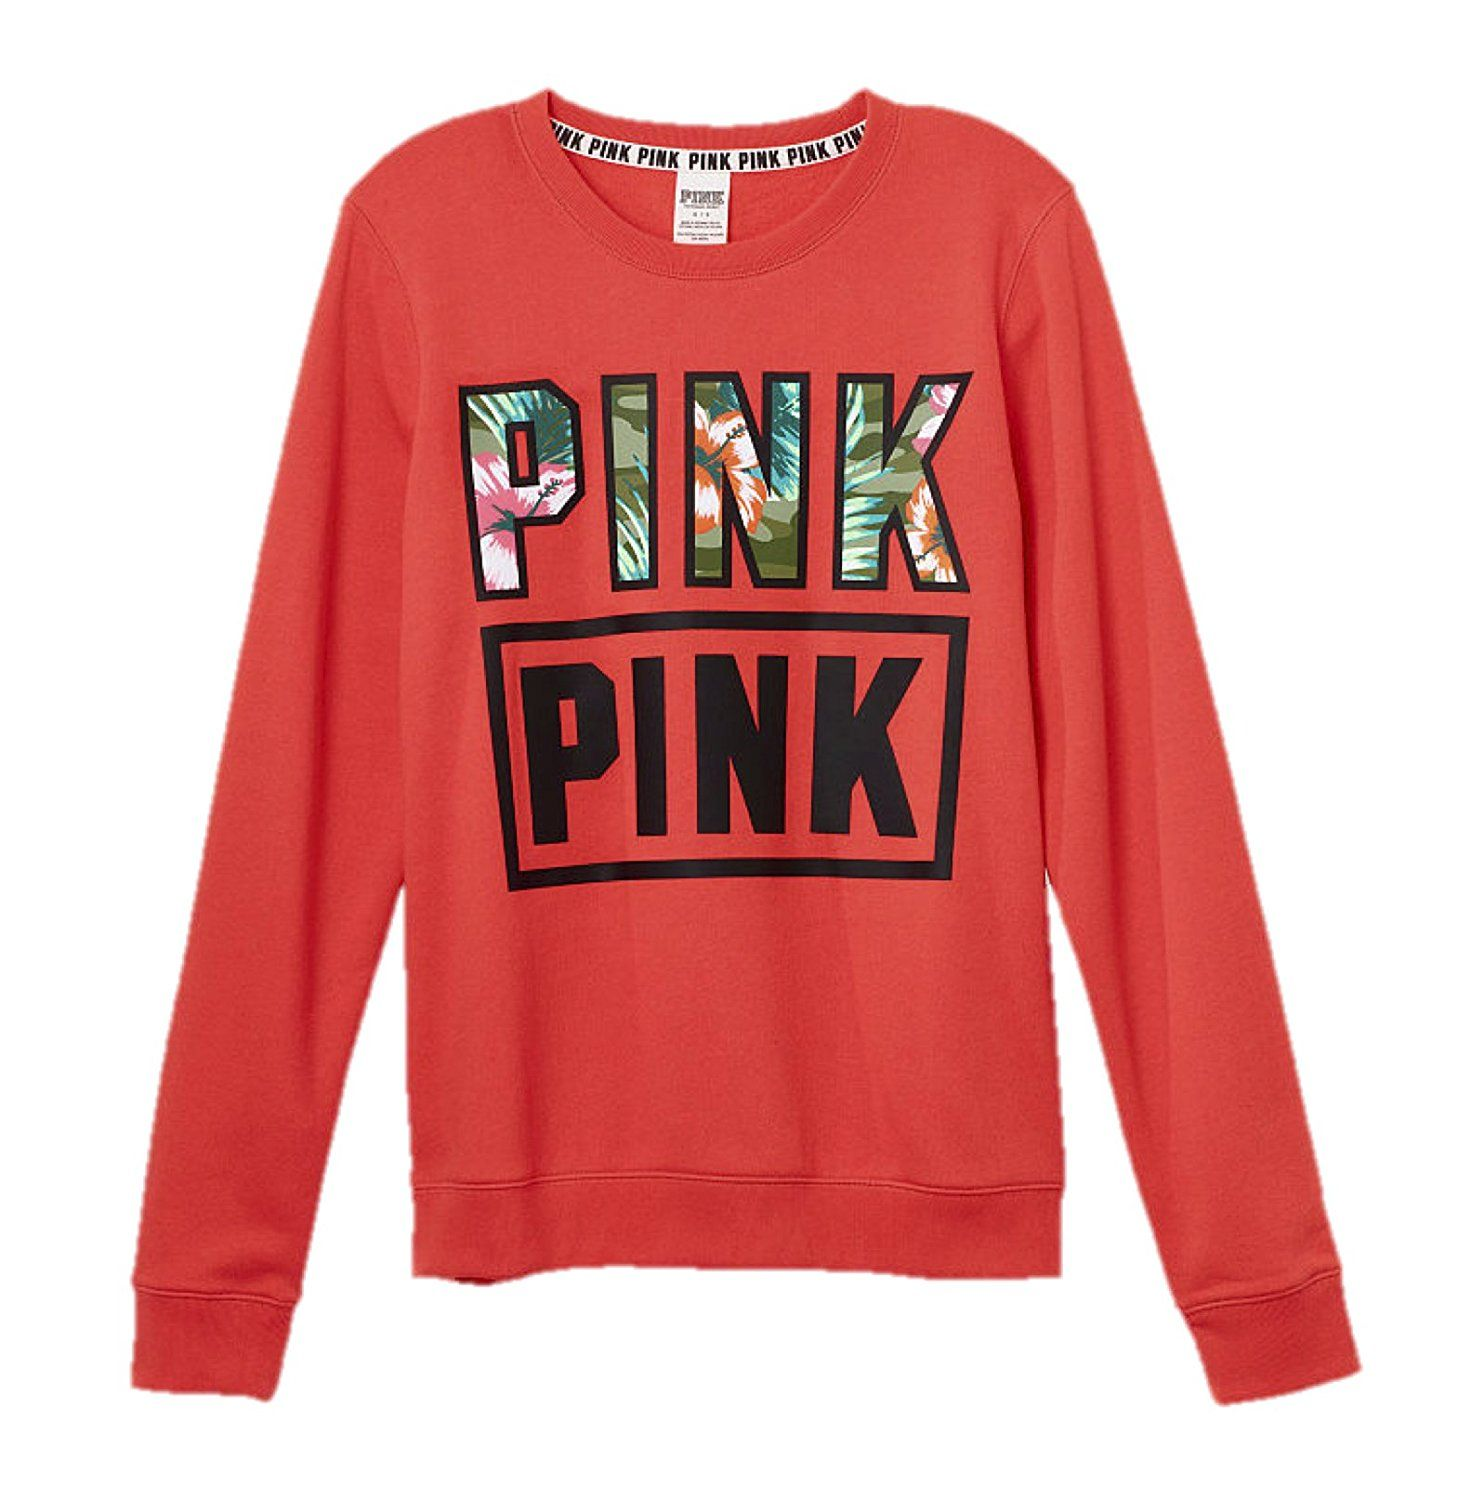 Victoria S Secret Pink Perfect Crew Sweatshirt Tropical This Is An Amazon Affiliate Link For More Pink Crewneck Red Crew Neck Sweater Leopard Print Outfits [ 1500 x 1471 Pixel ]